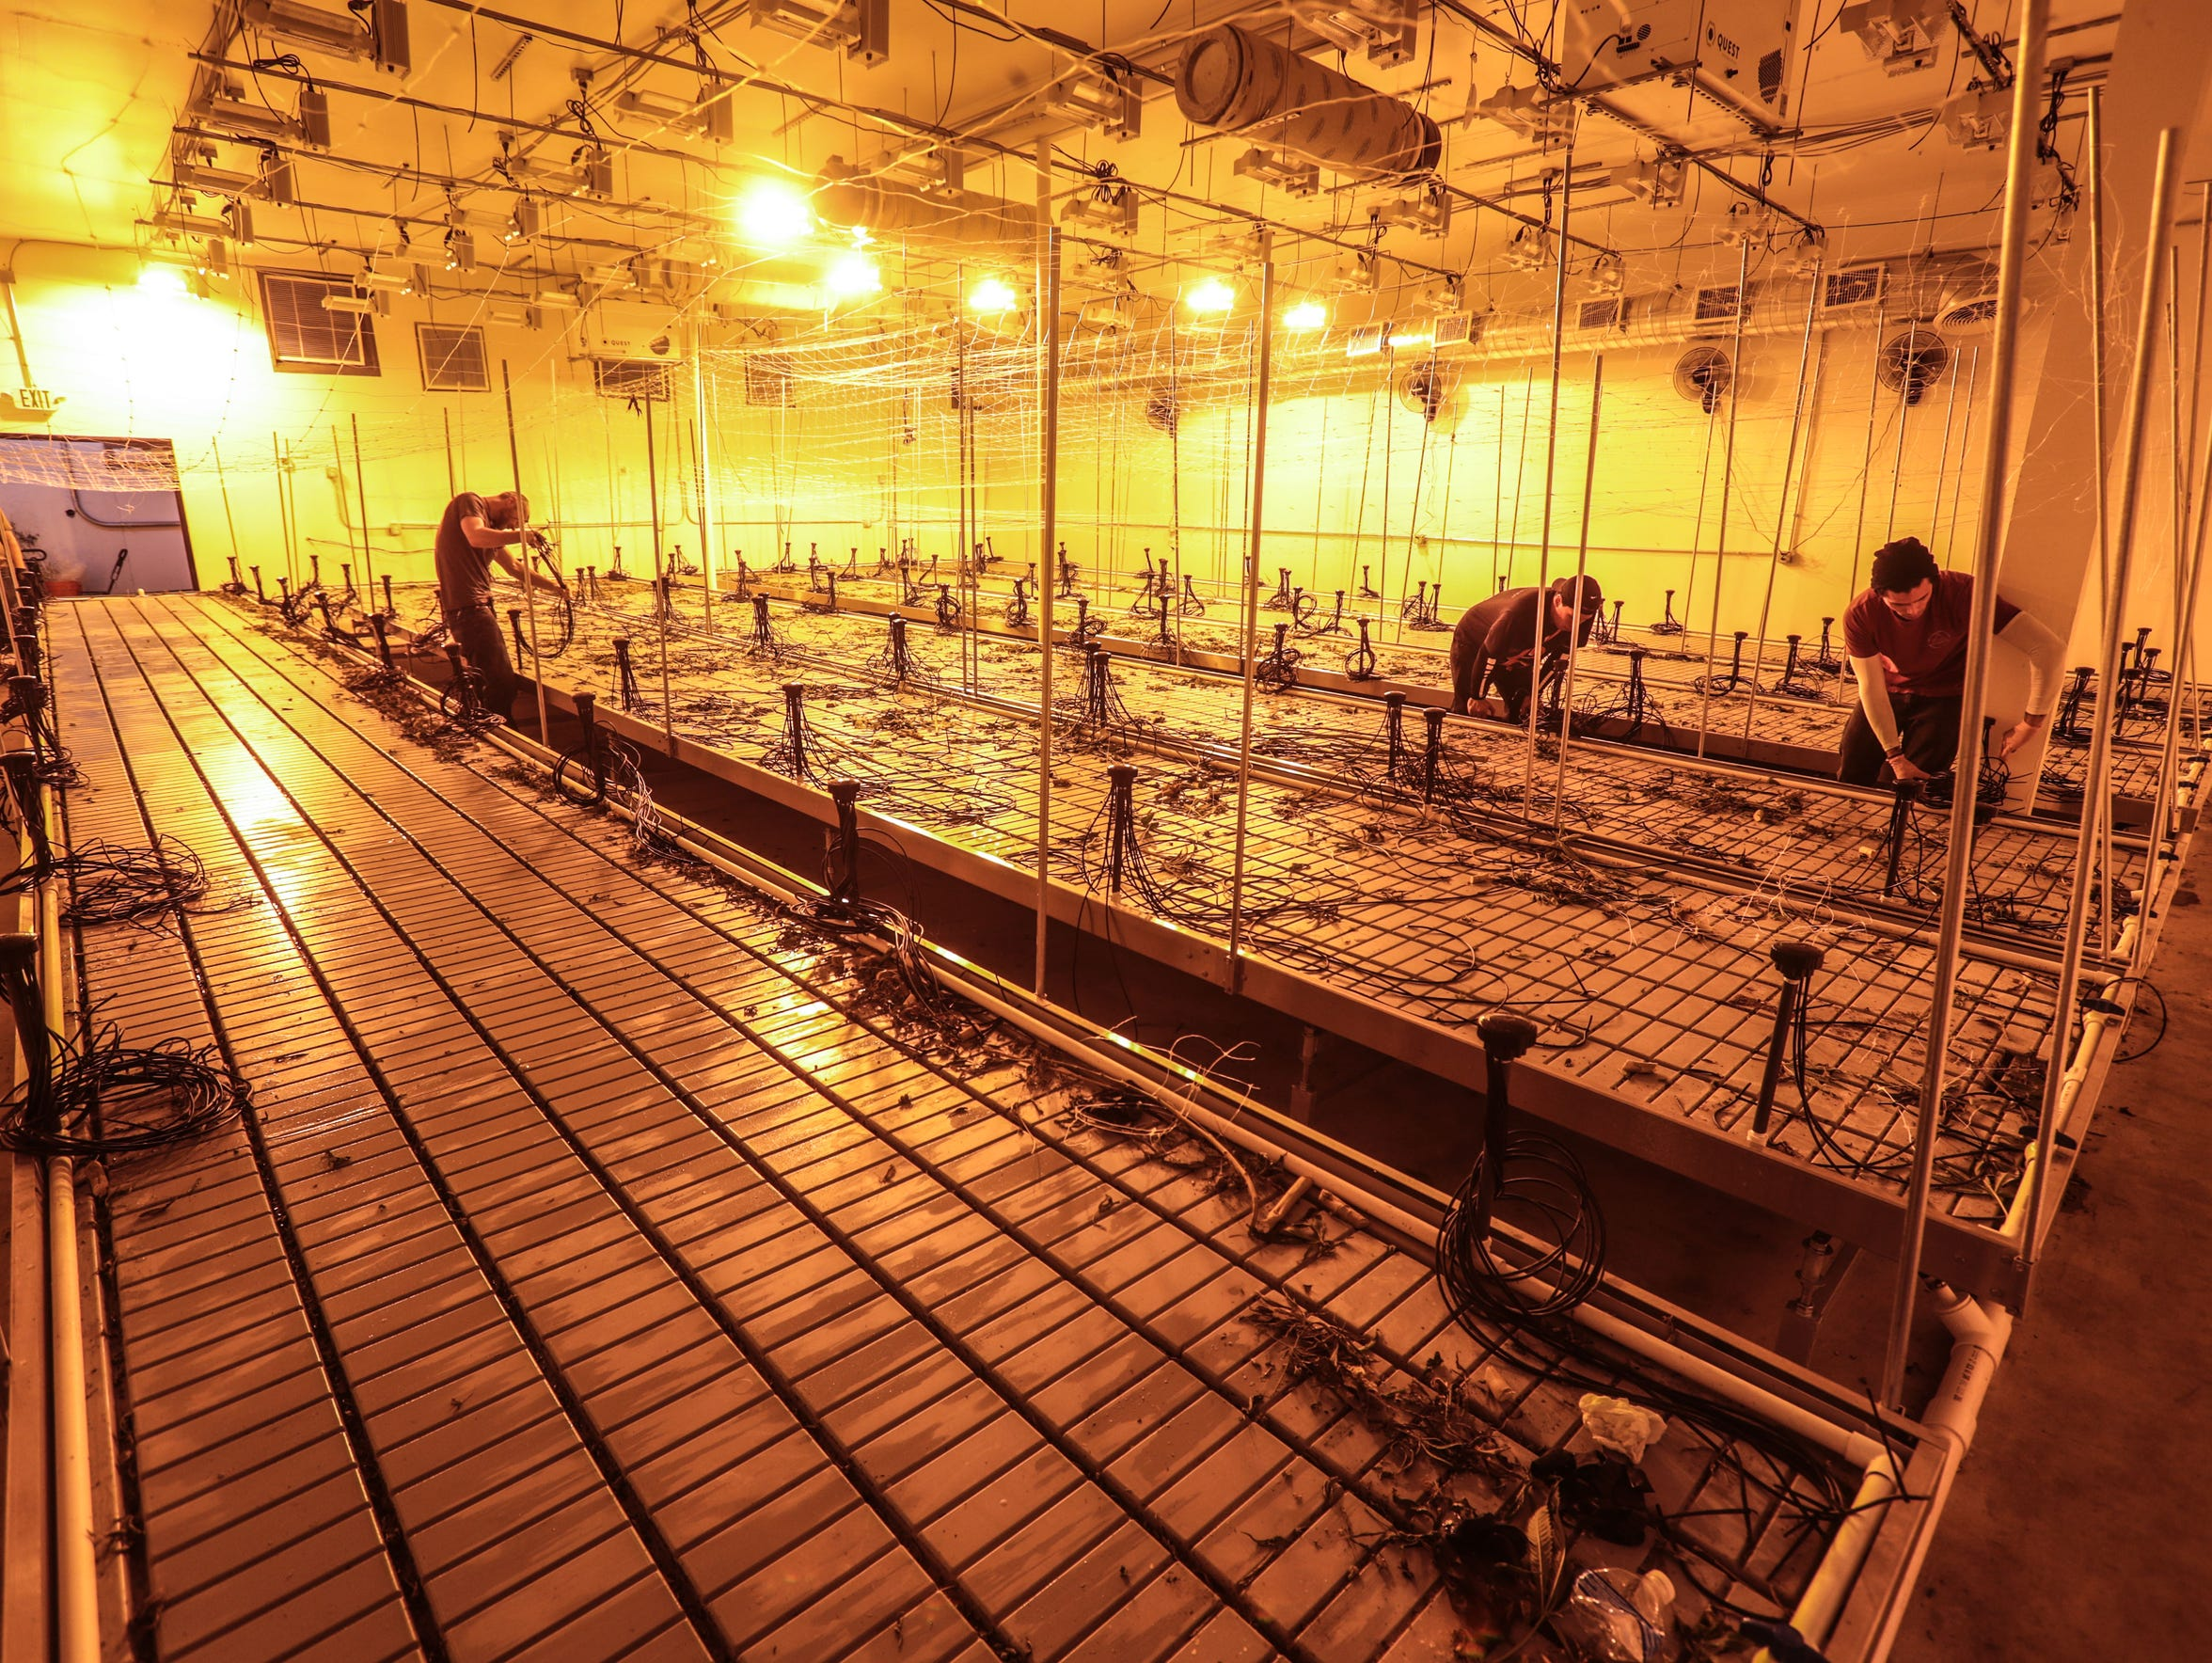 Workers clear out a grow room after a cannabis harvest